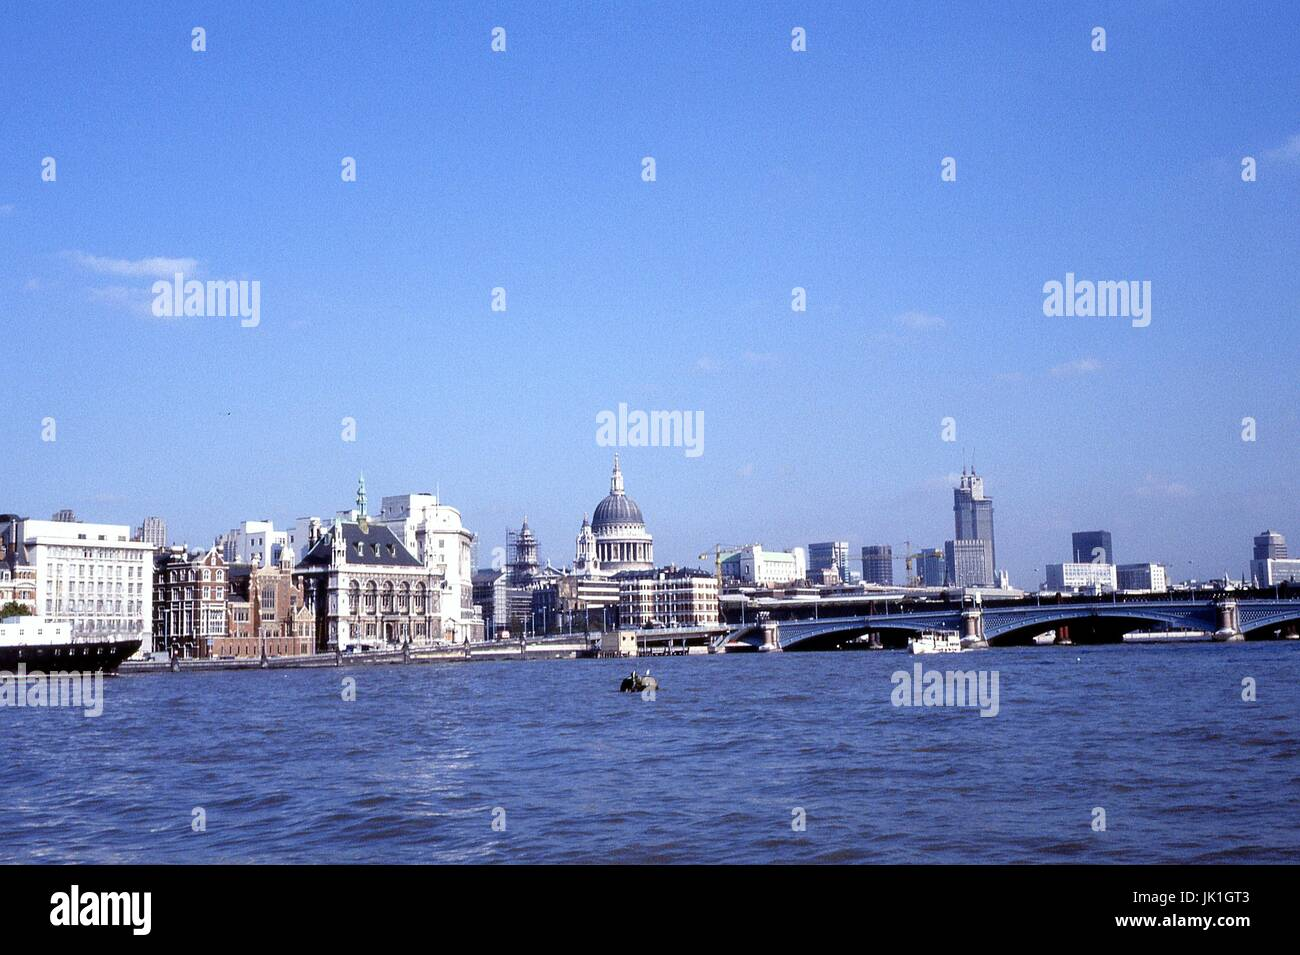 London from the River Thames 1977 - Stock Image